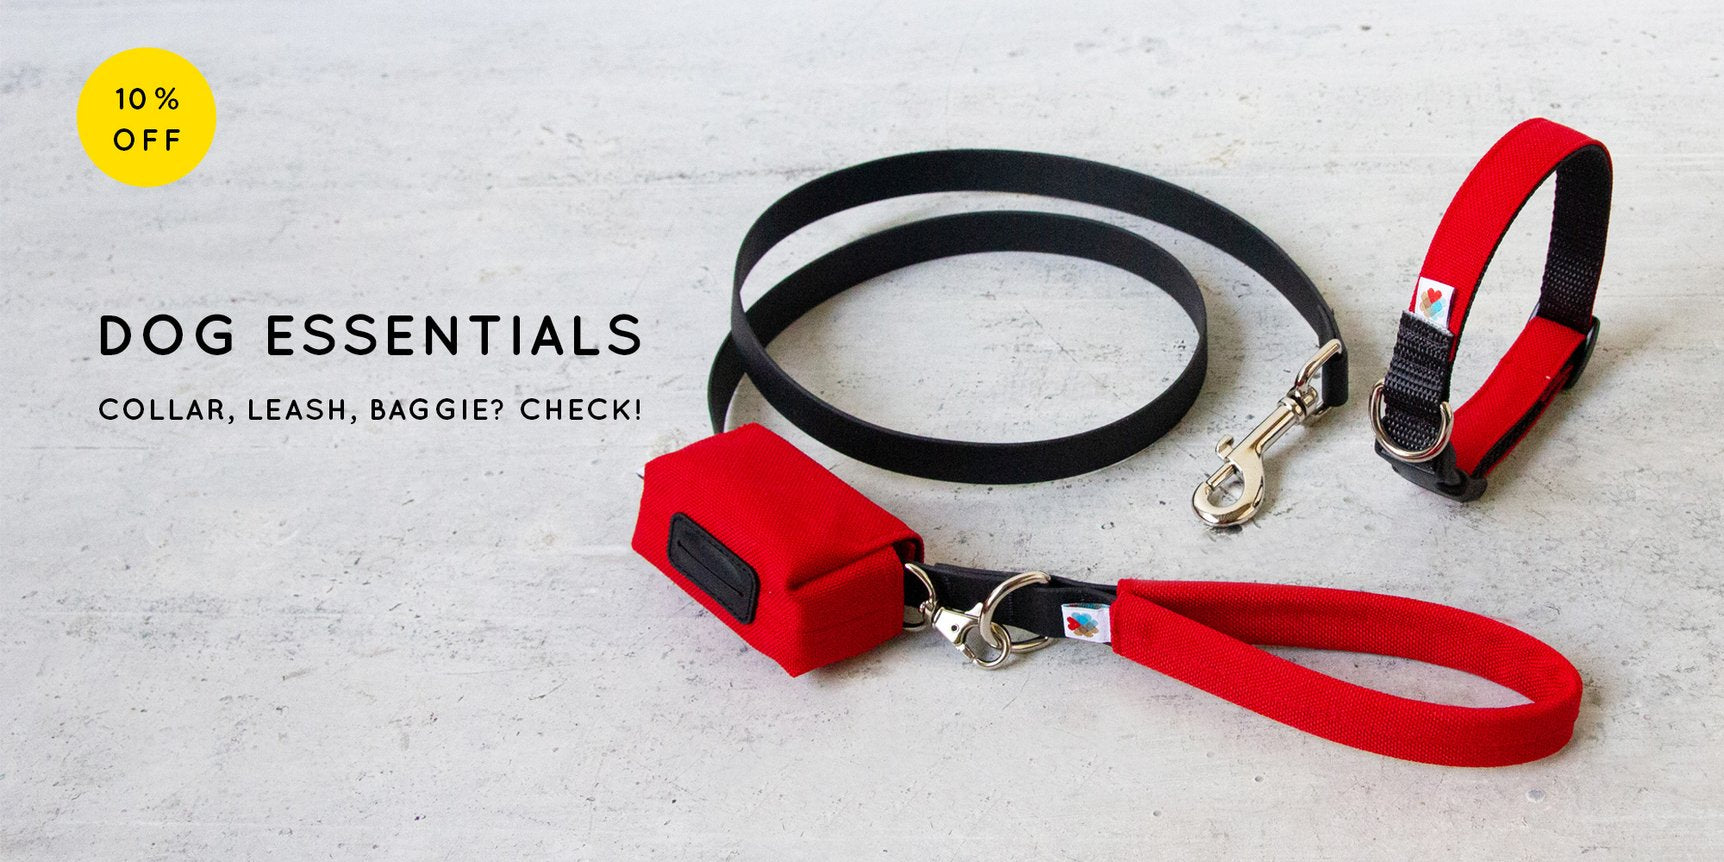 10% off dog essentials